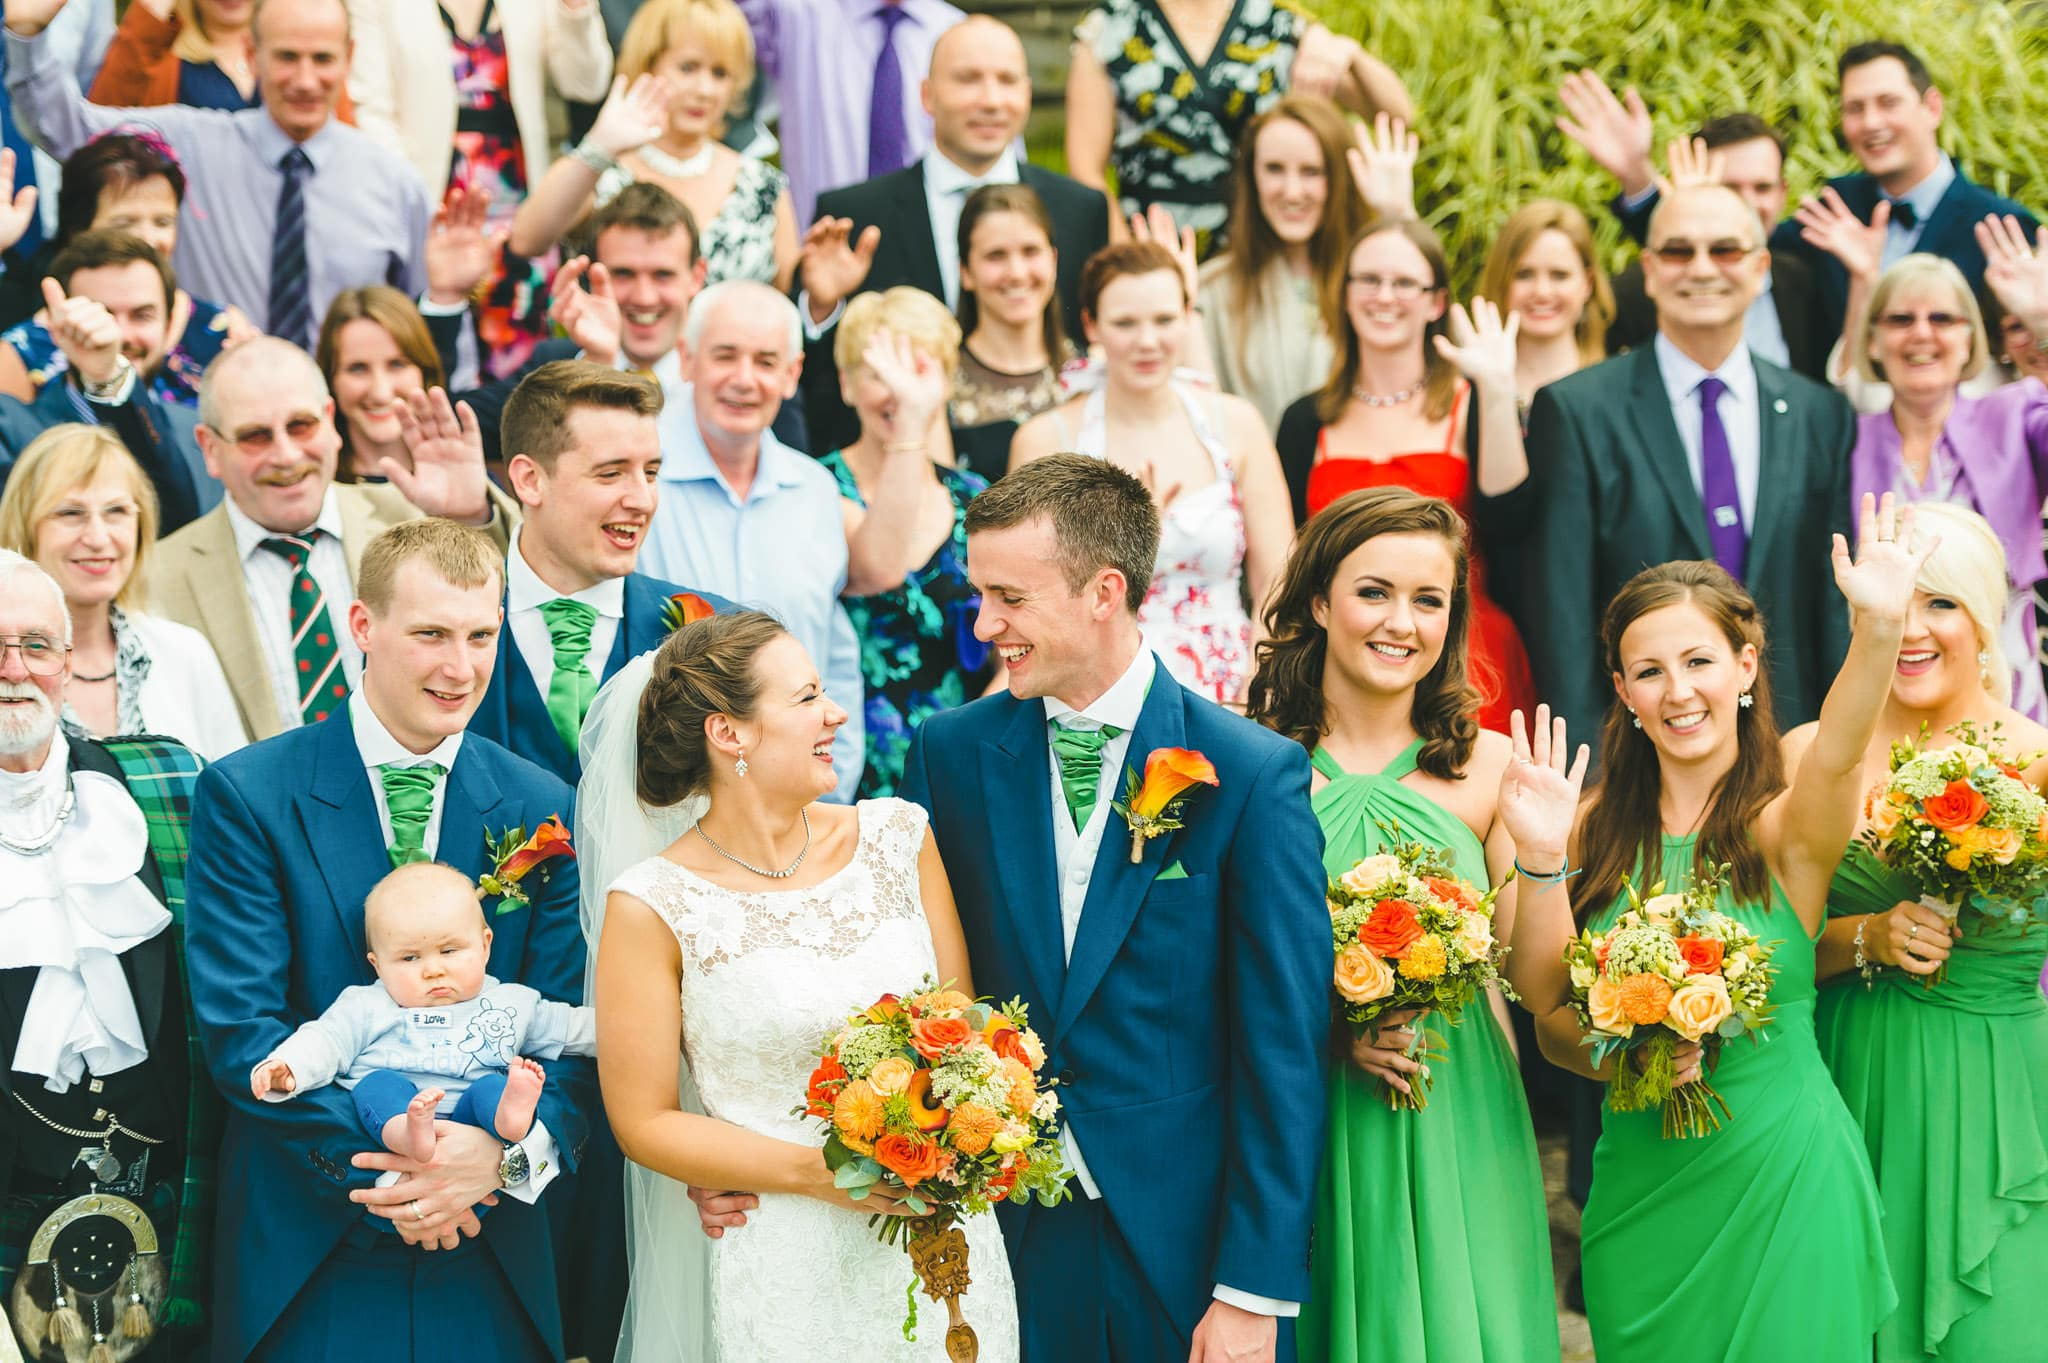 Wedding photography at Y Talbot Hotel in Tregaron, Wales | Tina + Phil 56